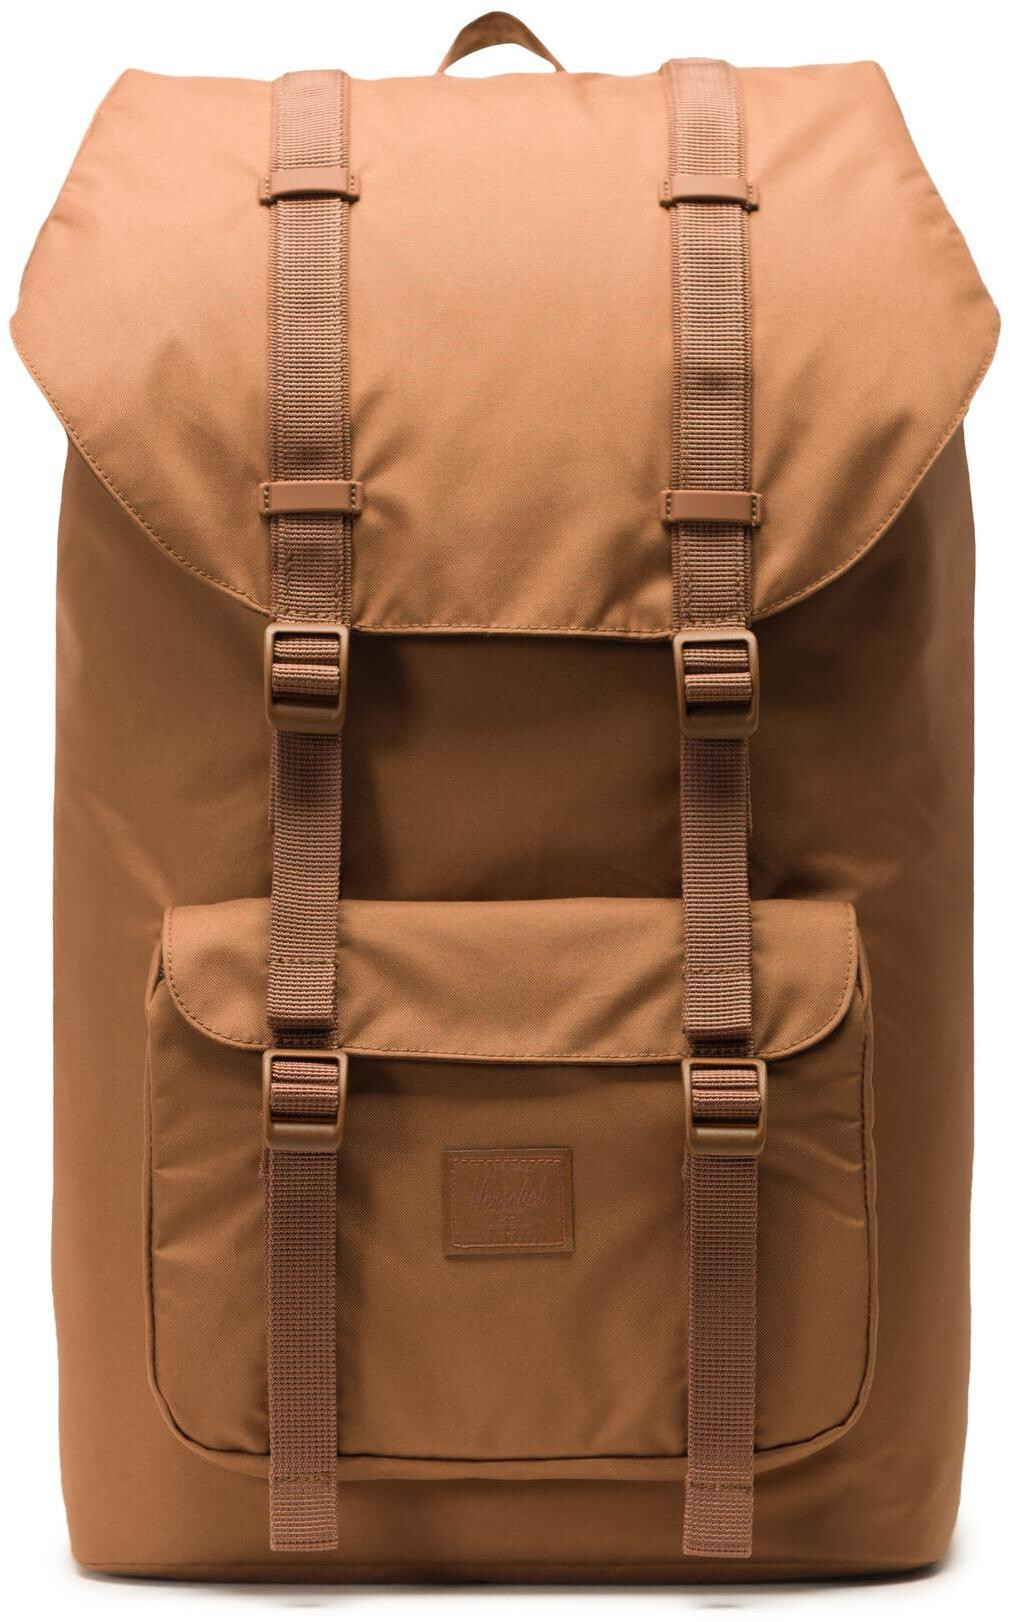 Herschel Little America Light Rygsæk, saddle brown (2019) | Travel bags